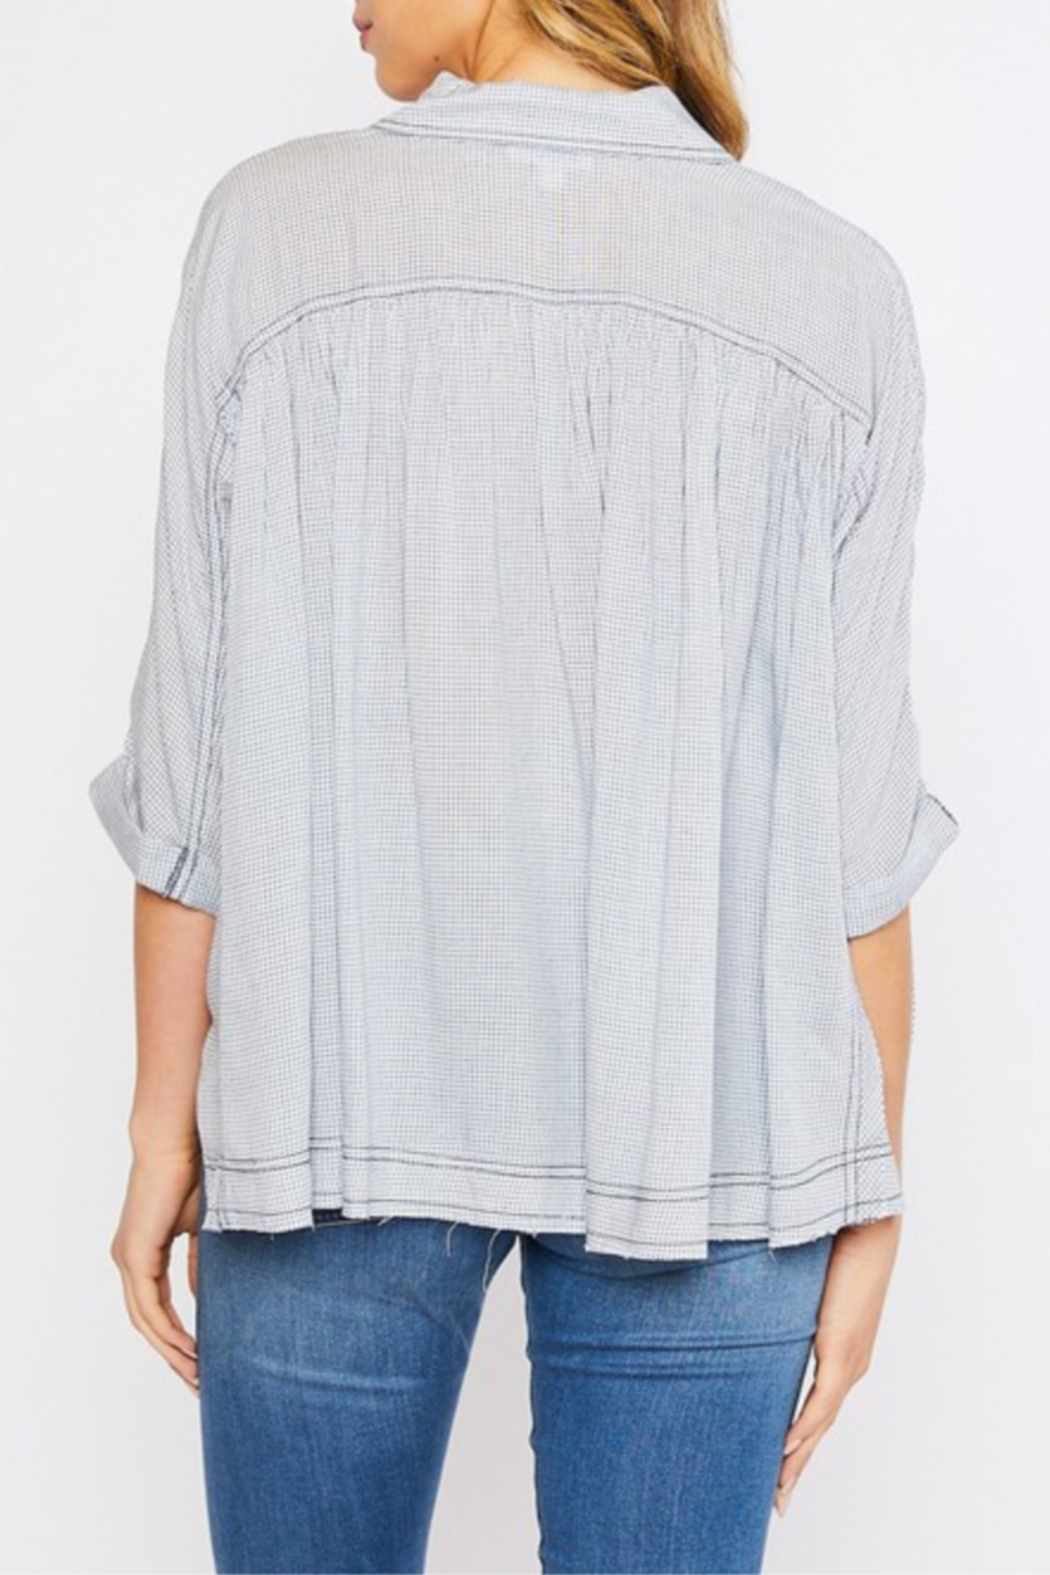 Mittoshop Lea Anne Top - Front Full Image